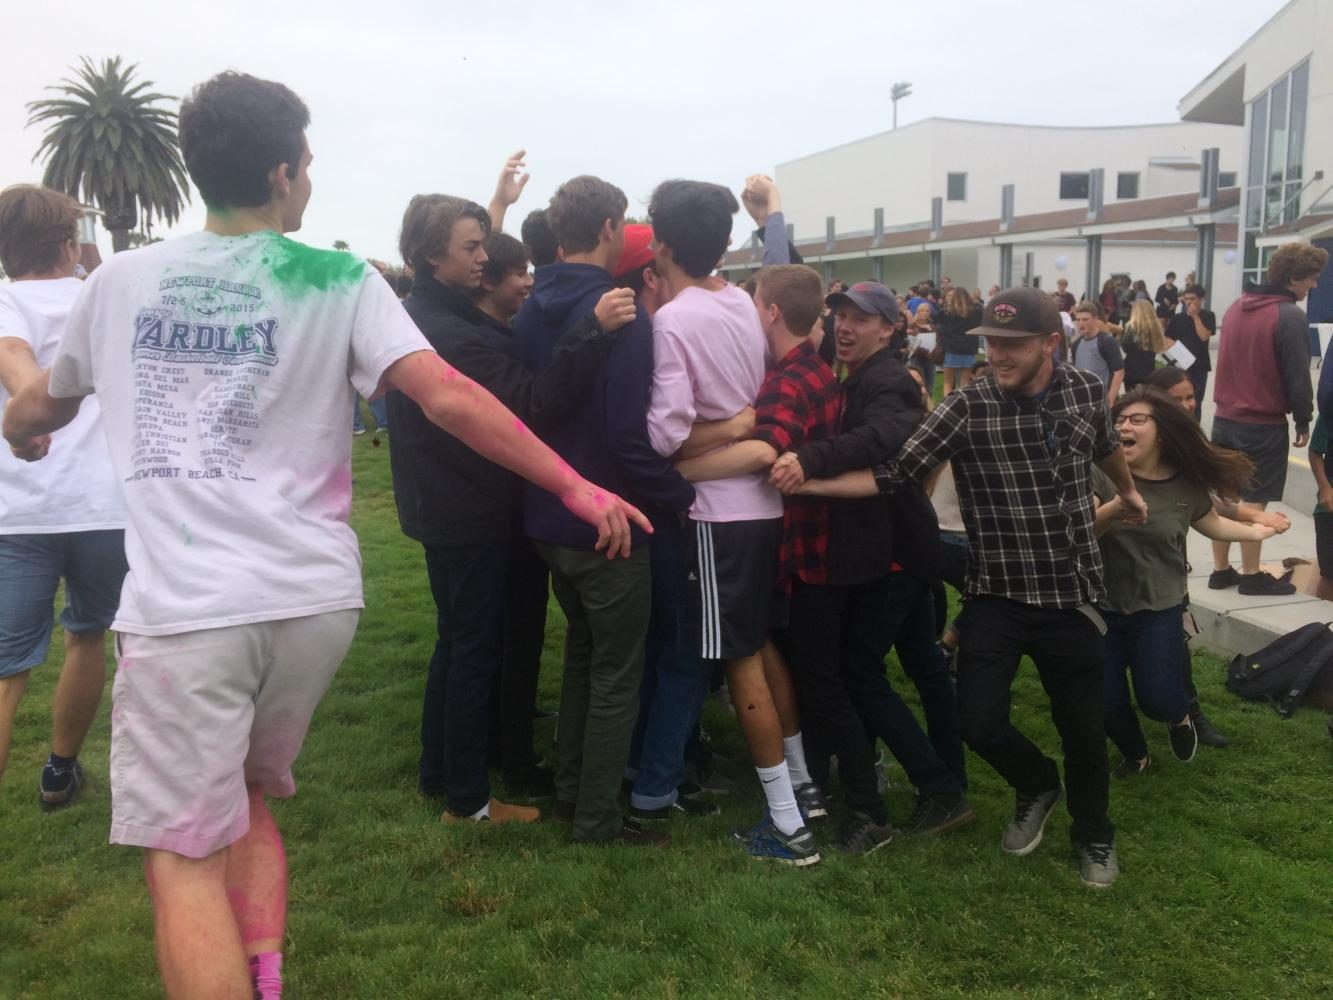 Homerooms Race for First in Homeroom Olympics Finale